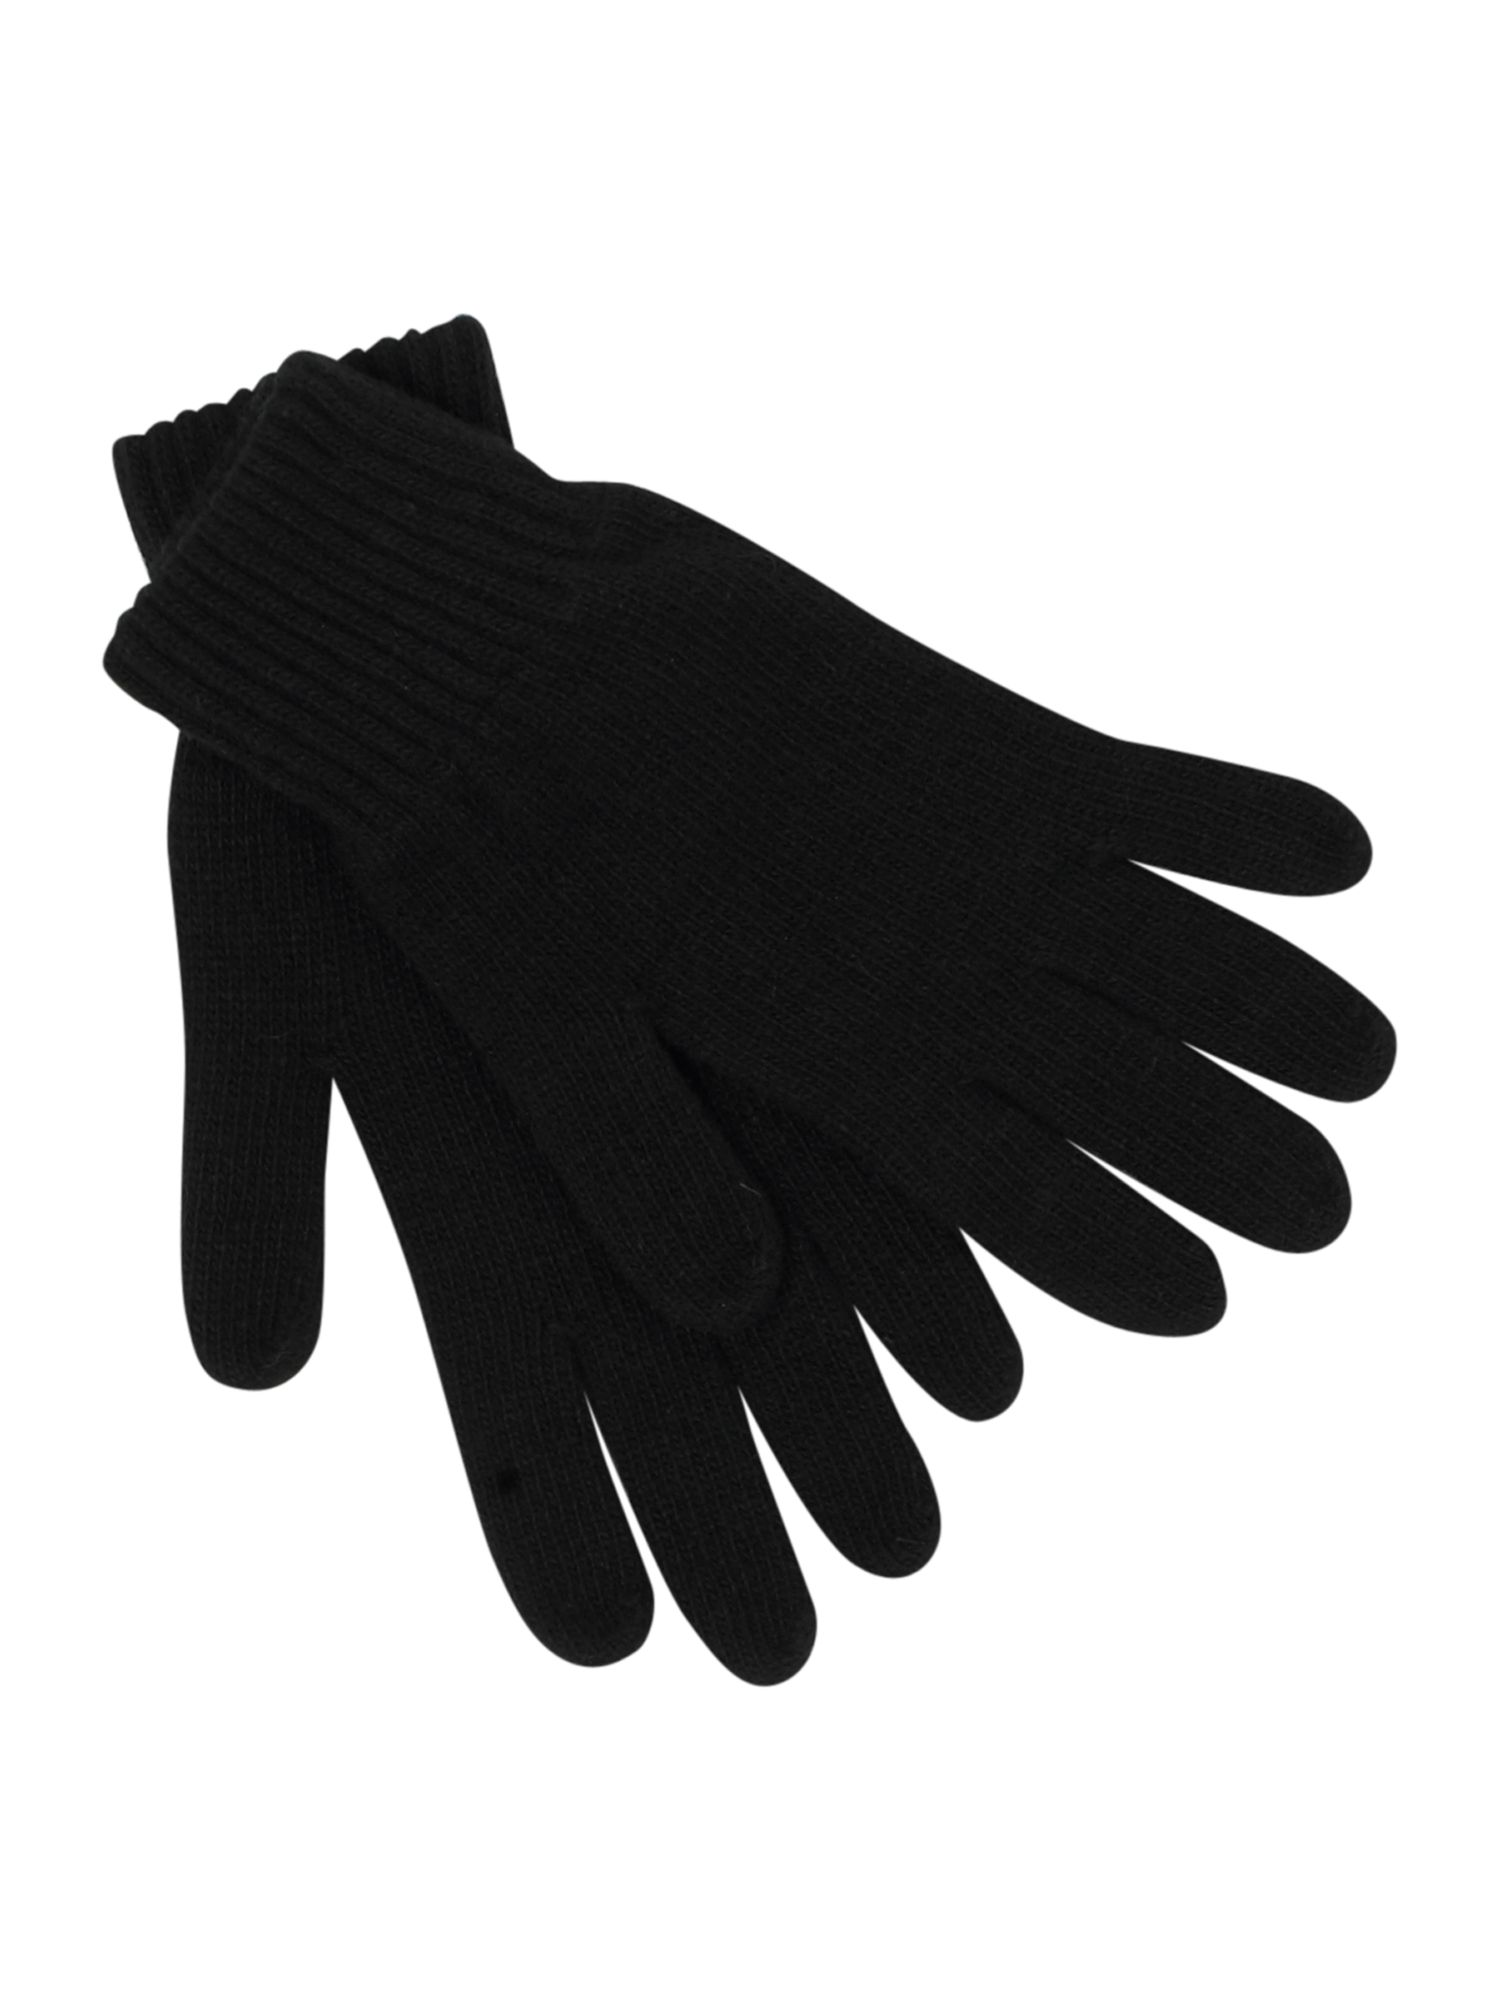 Linea plain knitted glove